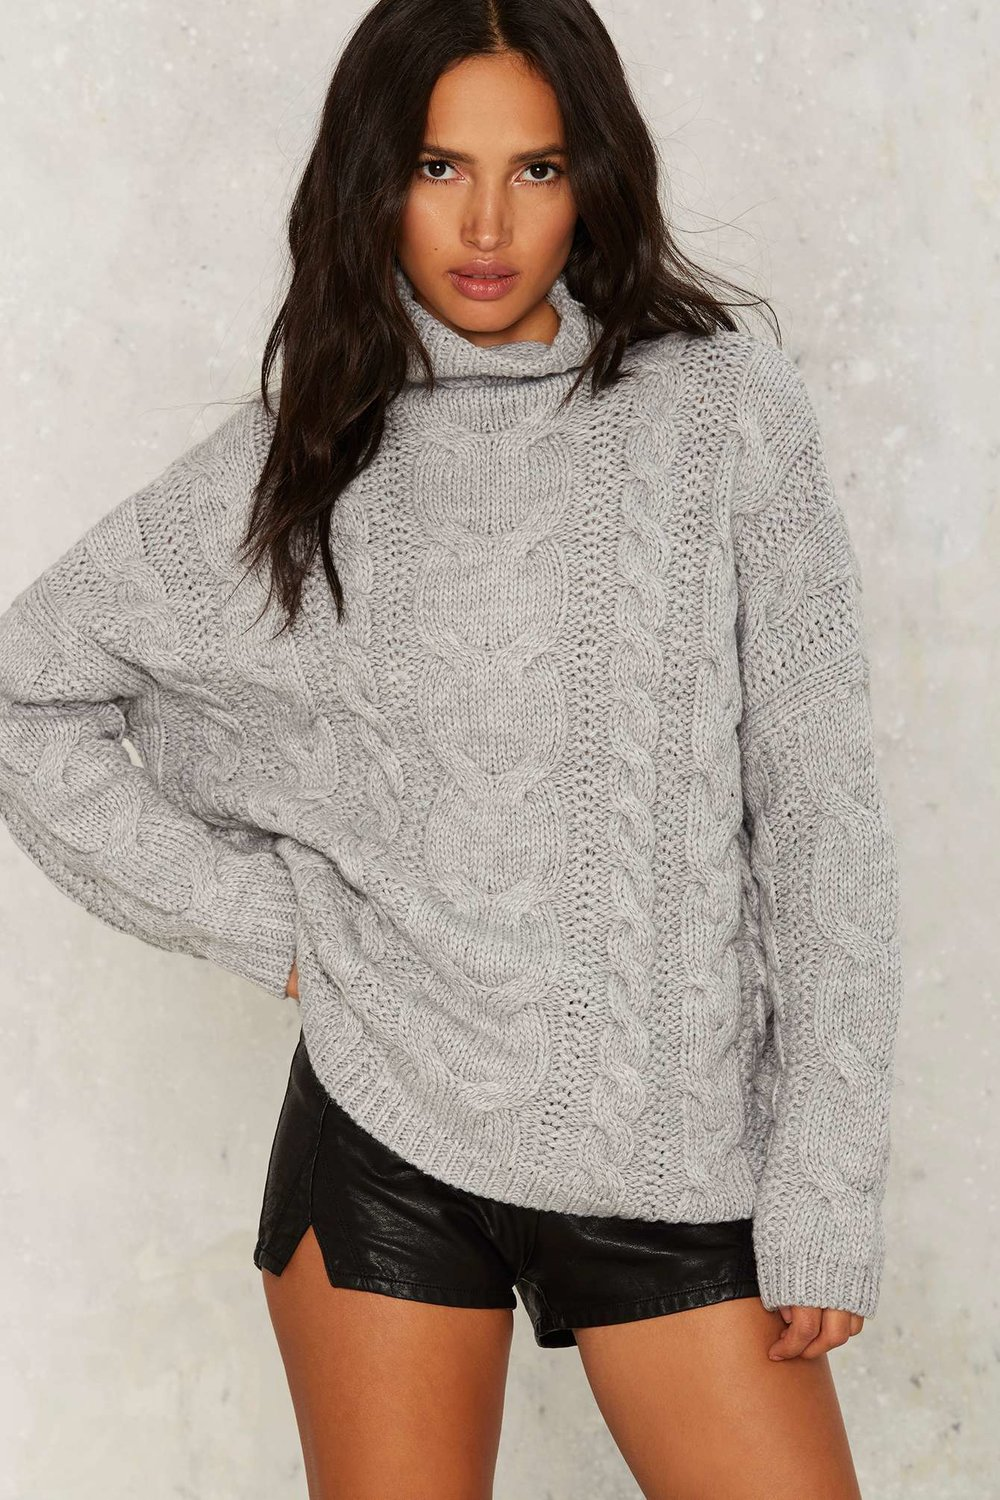 Nasty Gal | J.O.A. Ellis Cableknit Sweater